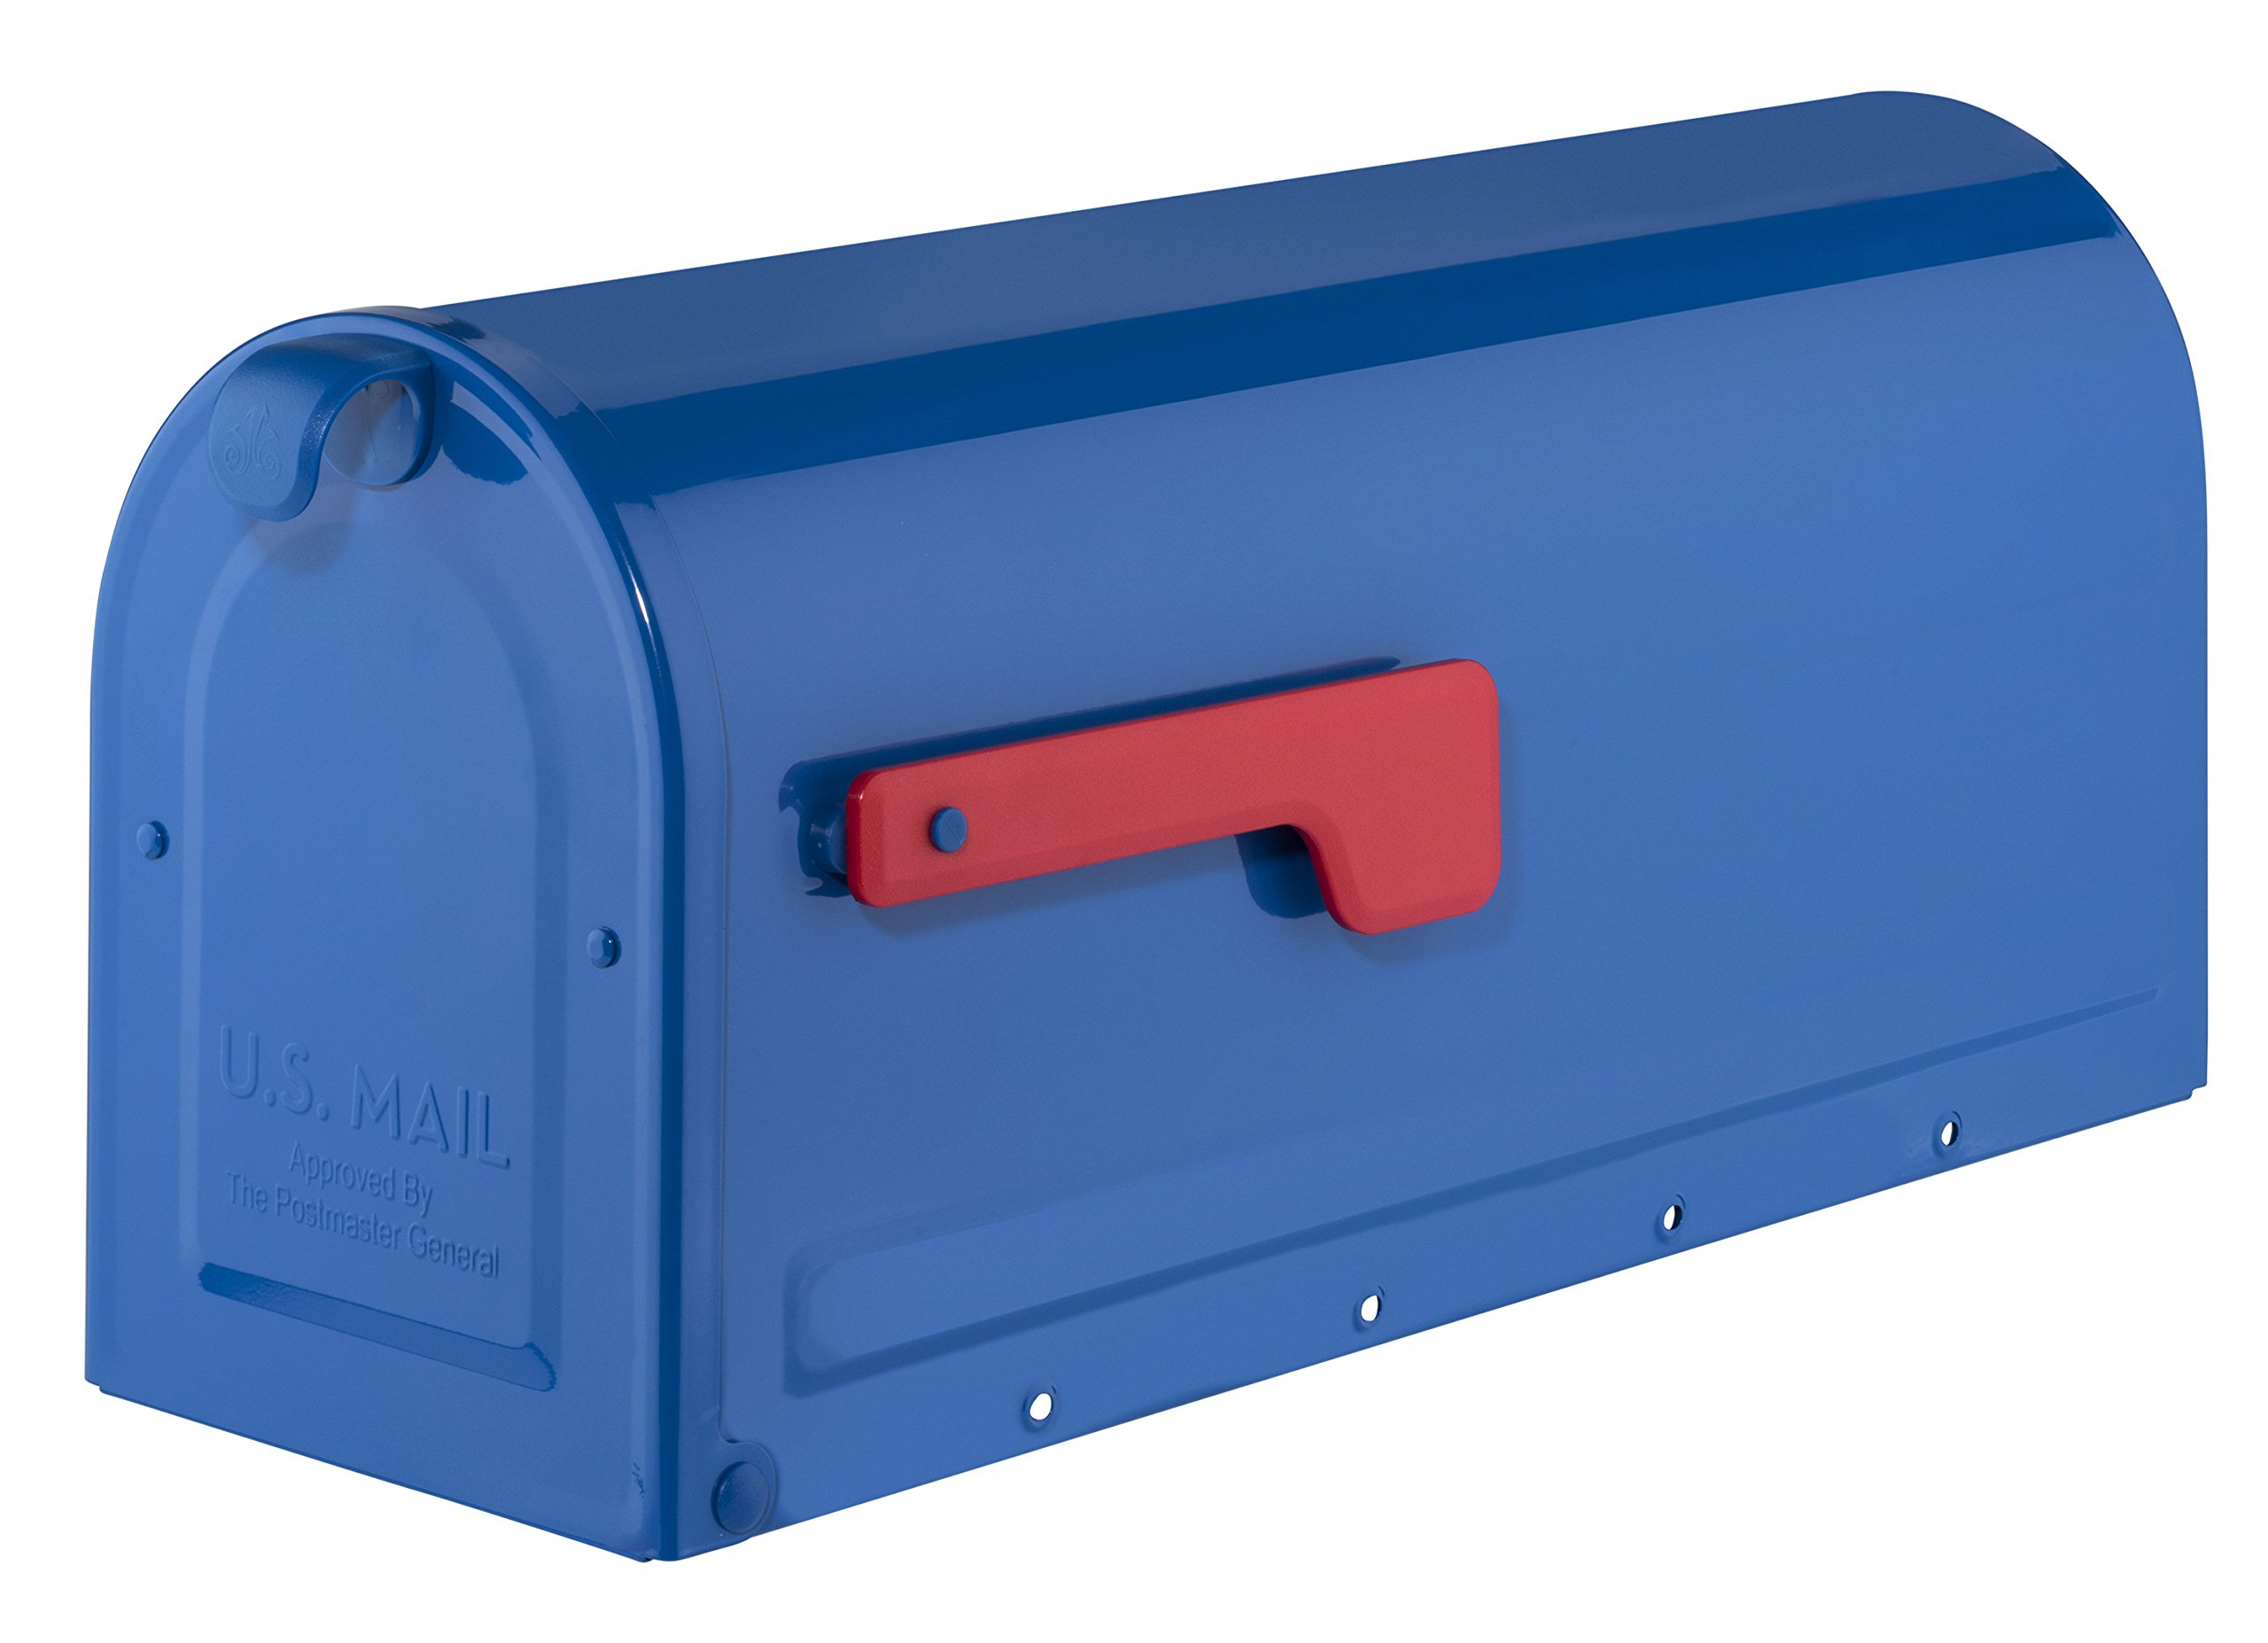 Architectural Mailboxes 7600BE MB1 Post Mount Mailbox Blue with Red Flag MB1 Post Mount Mailbox, Medium